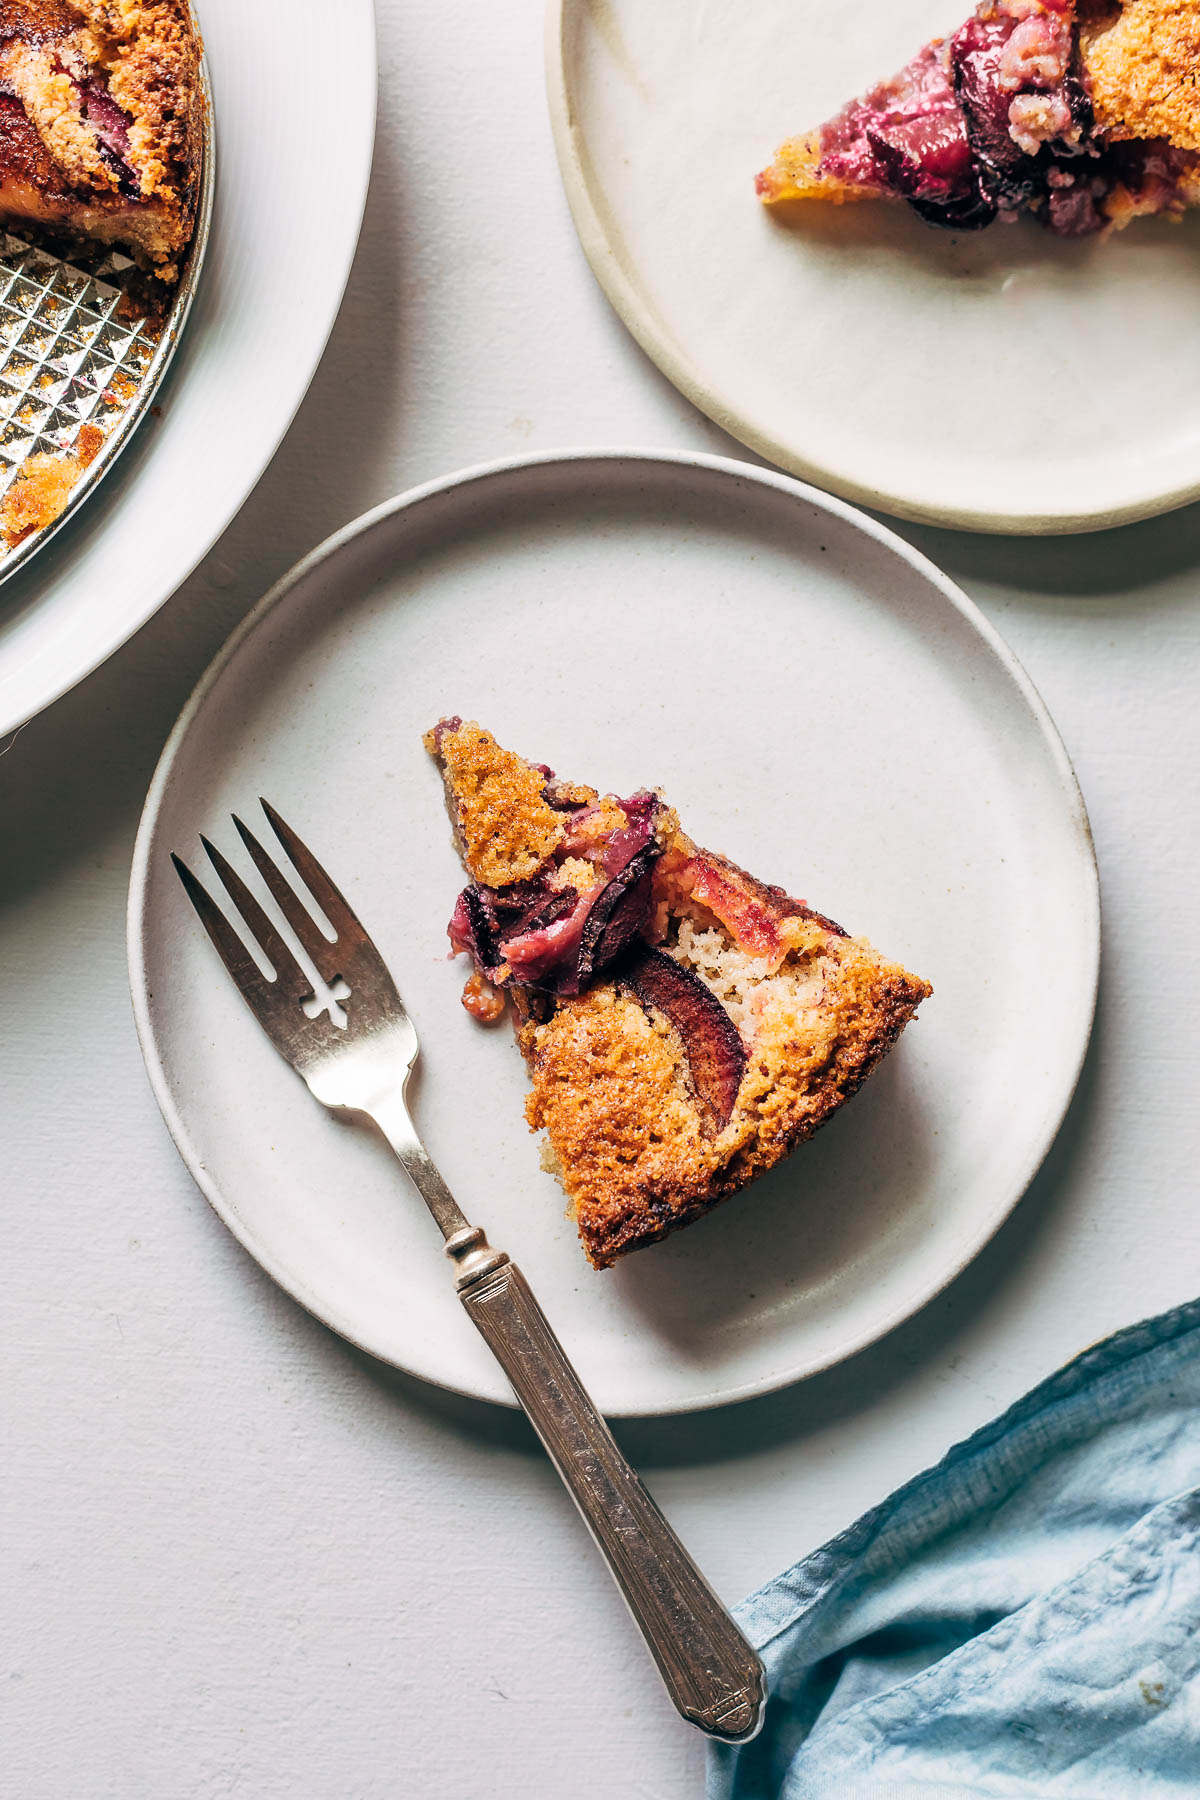 Overhead shot of a slice of gluten-free plum cake on a white plate with a fork and a blue napkin.